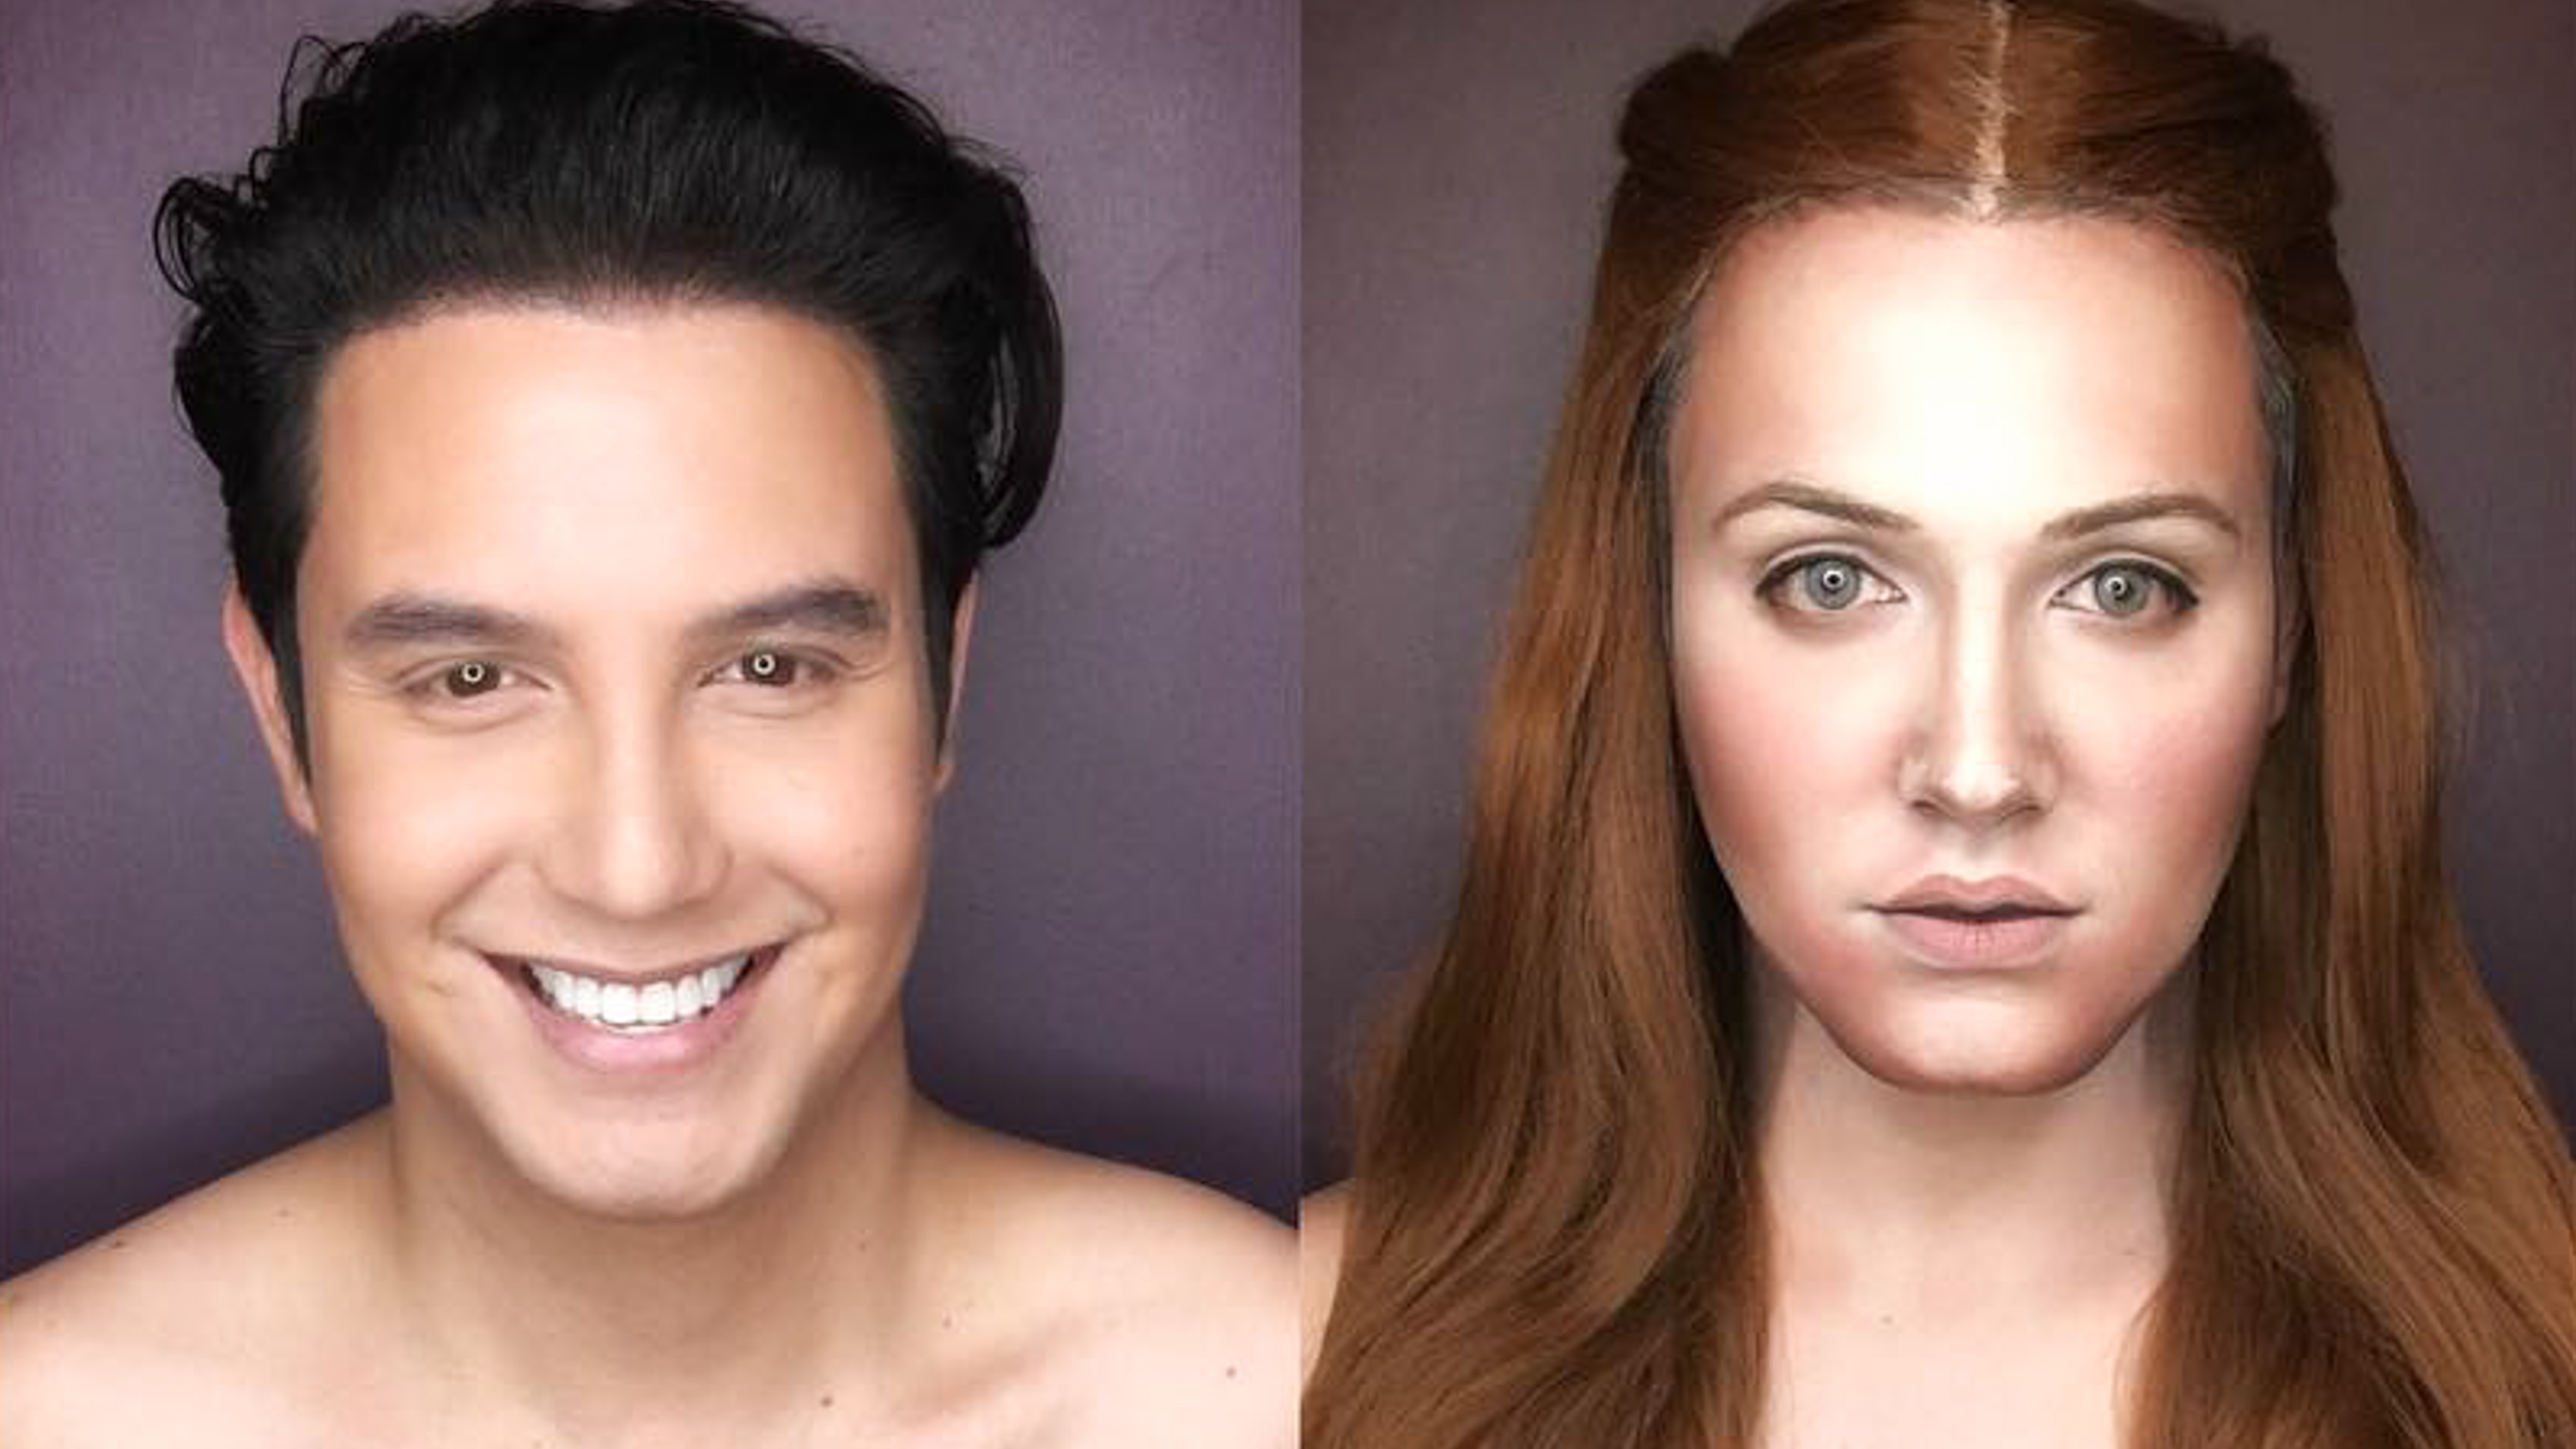 IN PHOTOS Paolo Ballesteros Stunning Game Of Thrones